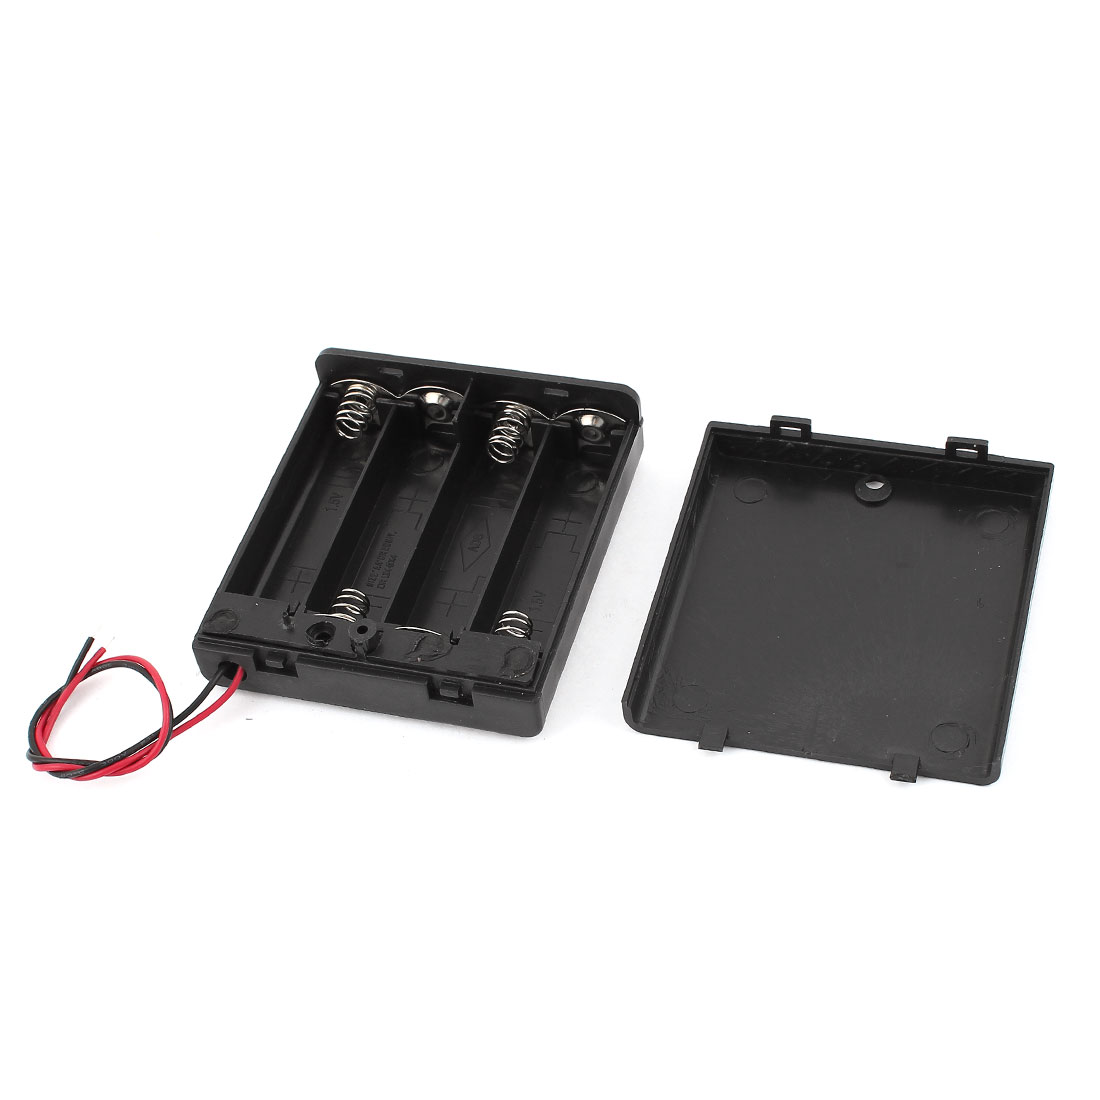 Black Plastic 15cm Wires Leads Switch 4x 1.5V AA Battery Box Case Holder